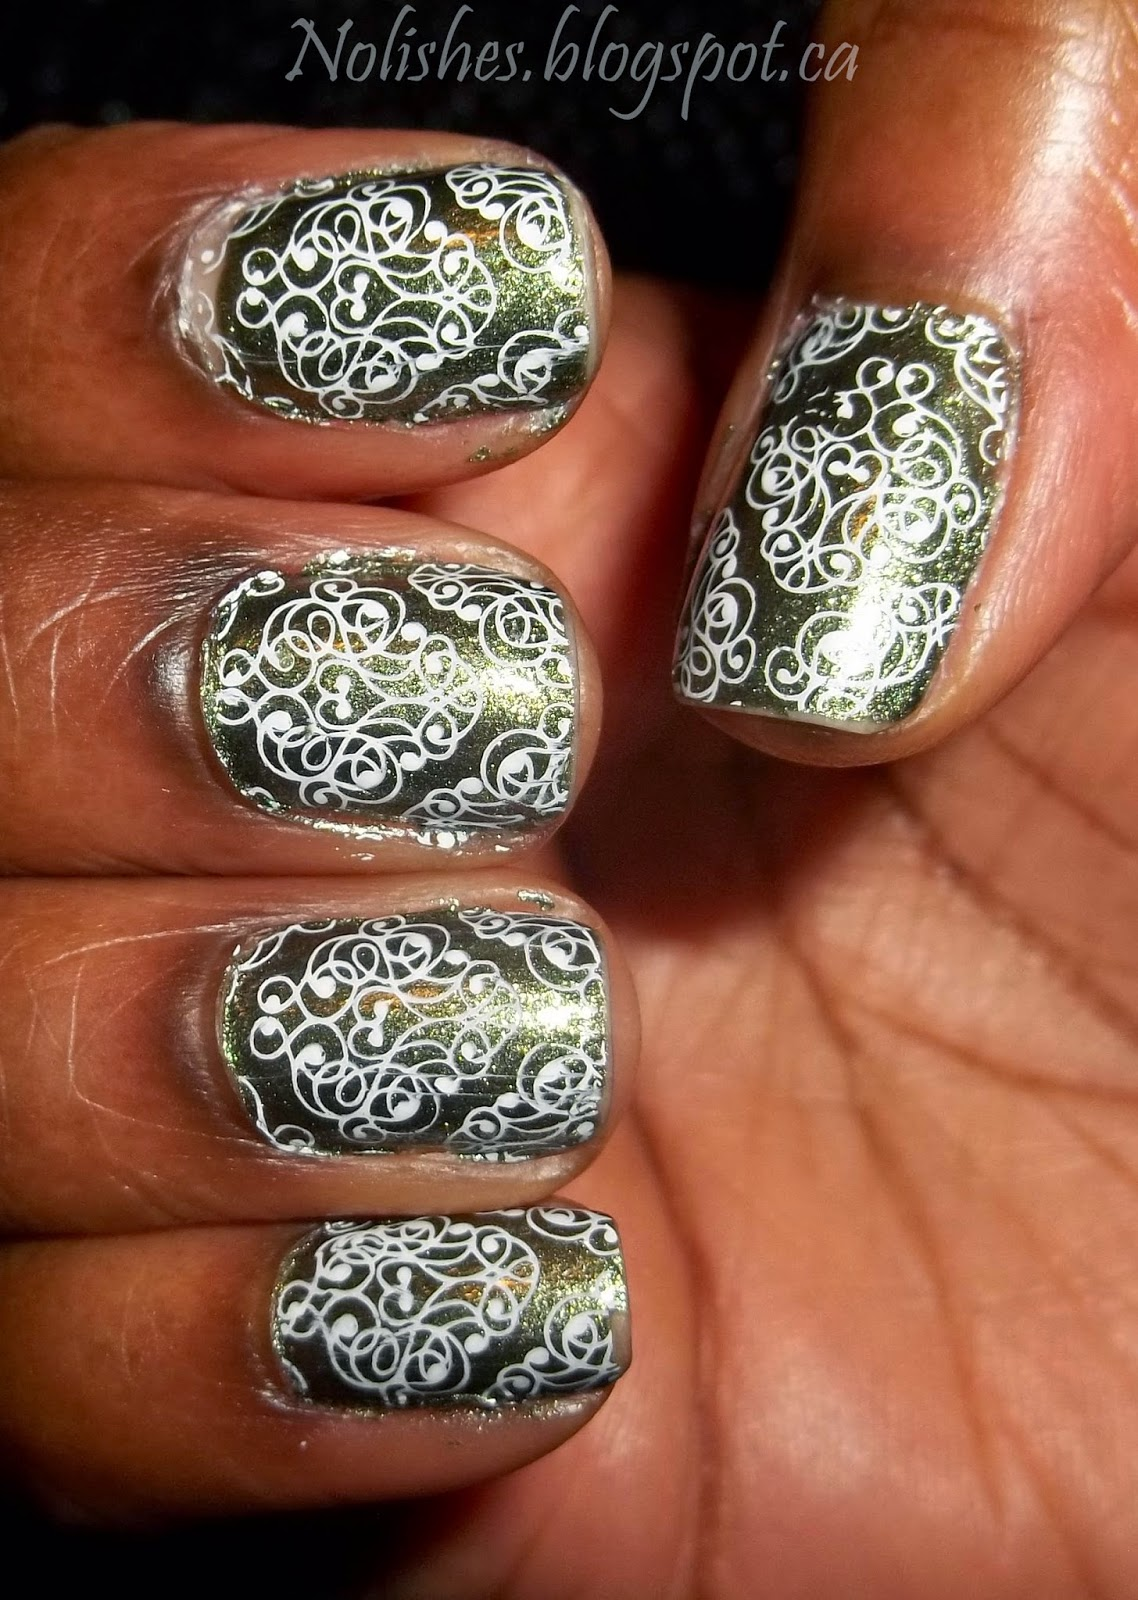 Green and White Nail Stamping Manicure using Sinful Colors 'Vintage', and Konad Special Polish in White. Stamped using full nail filigree pattern image from Lily Anna Plate 10.